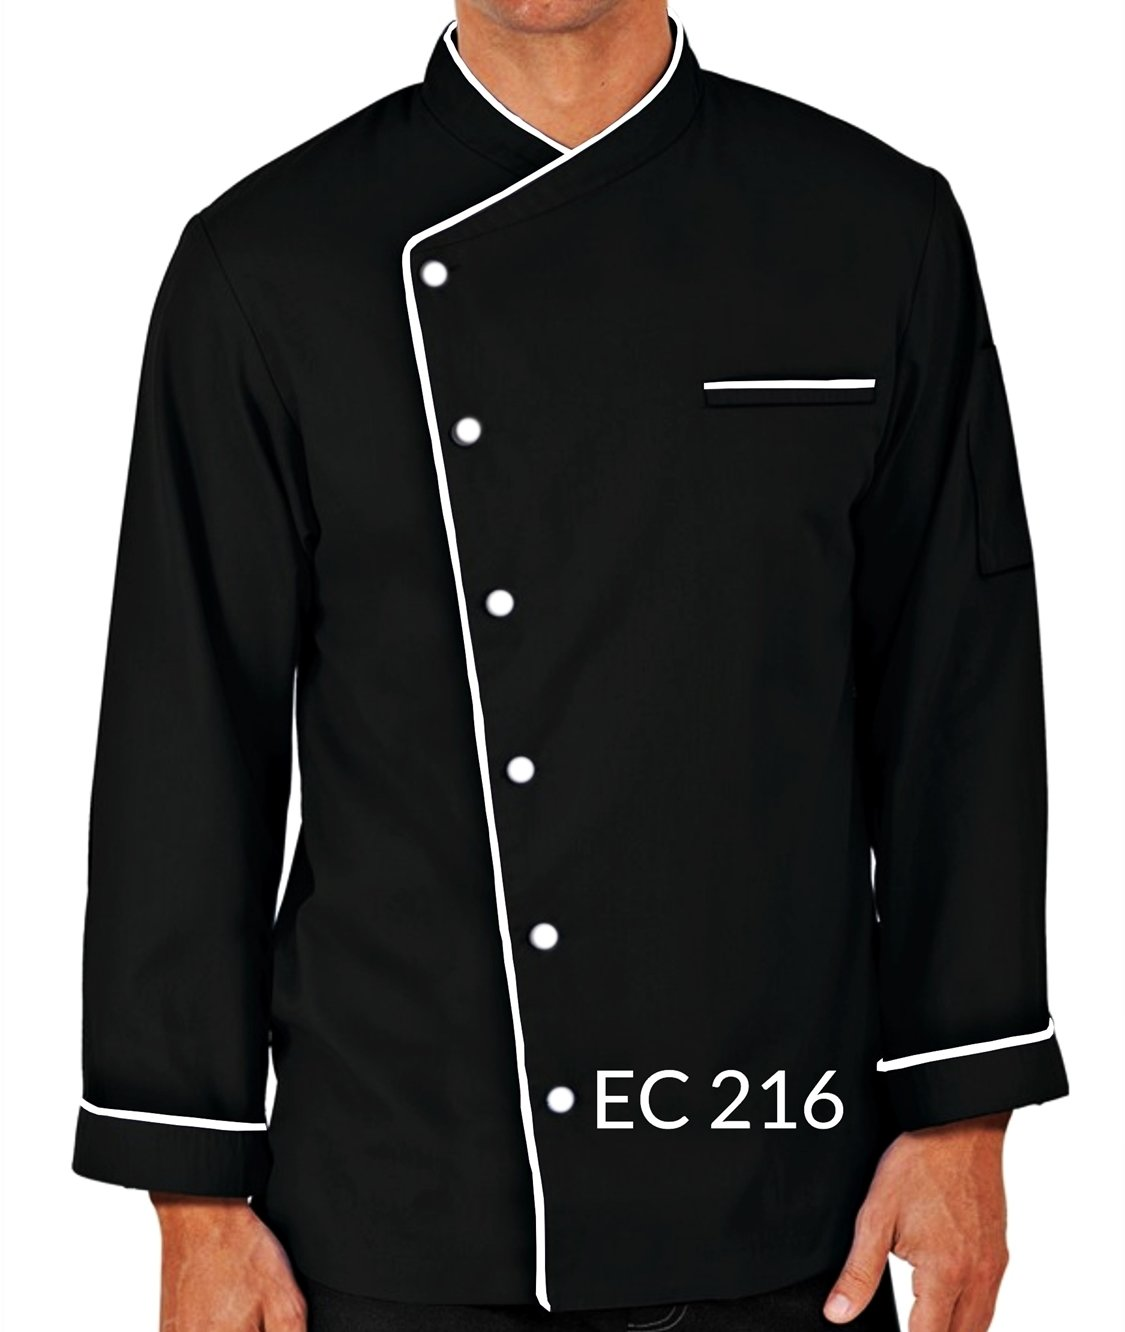 EC216 EXECUTIVE CHEF COAT